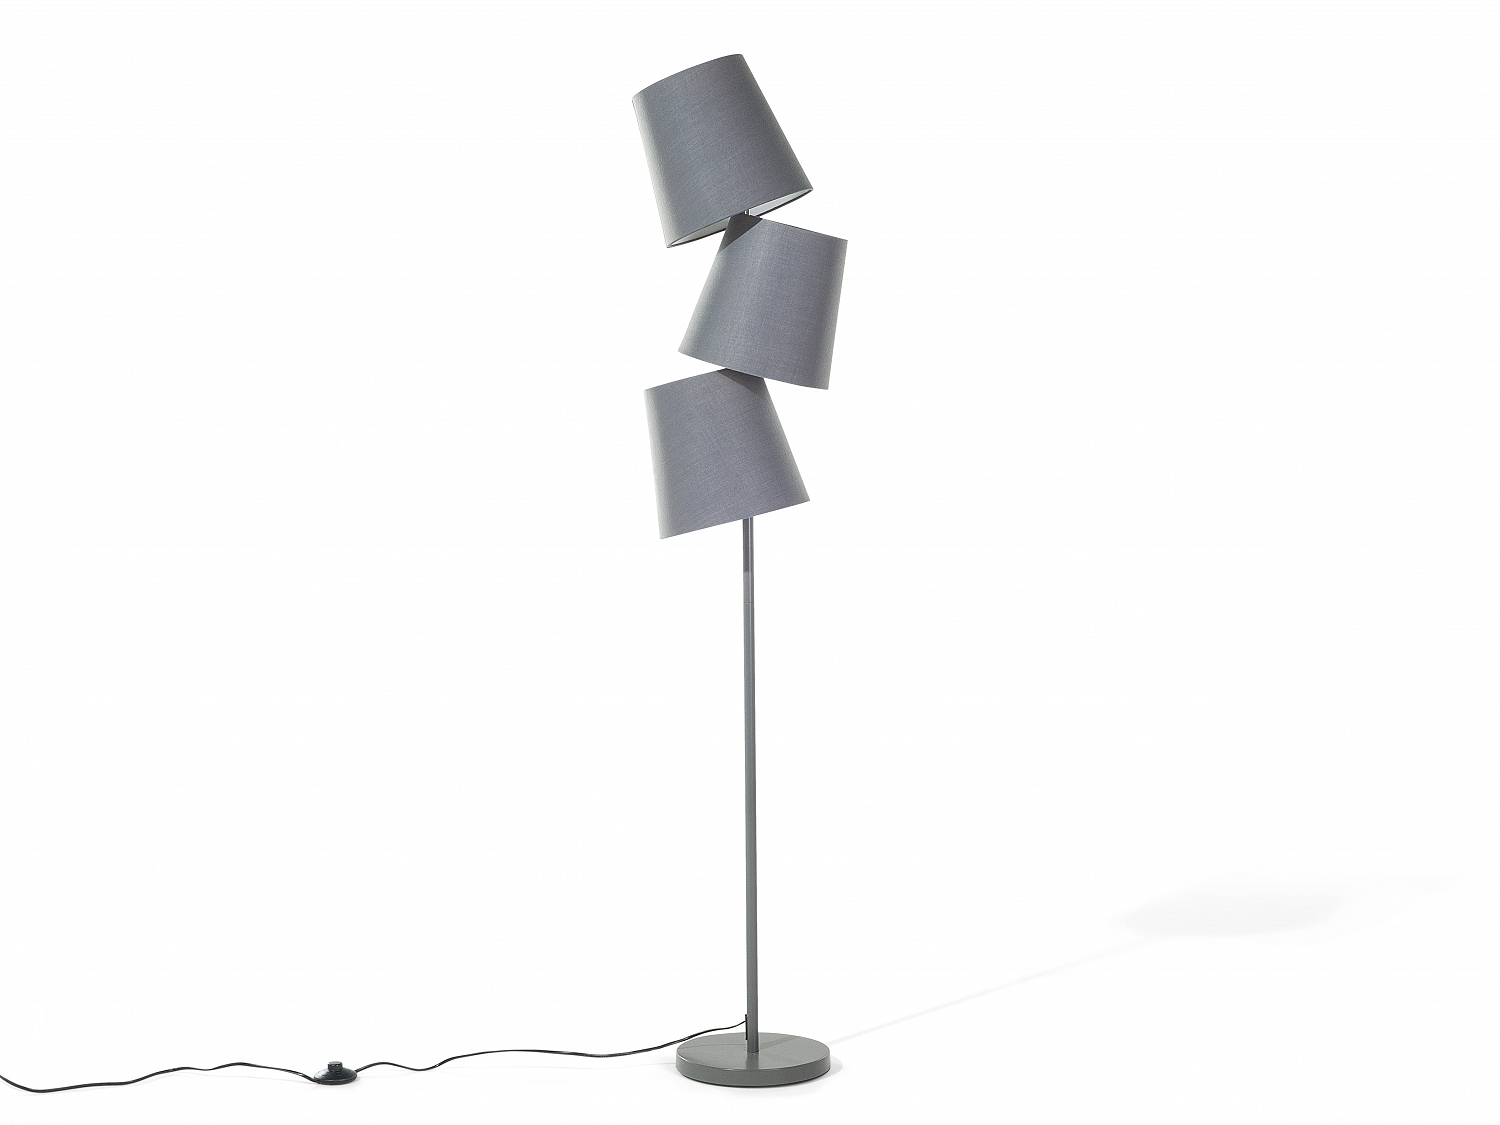 Lampadaire lampe de salon 3 abat jours design gris style contemporain ebay - Lampe de salon ...